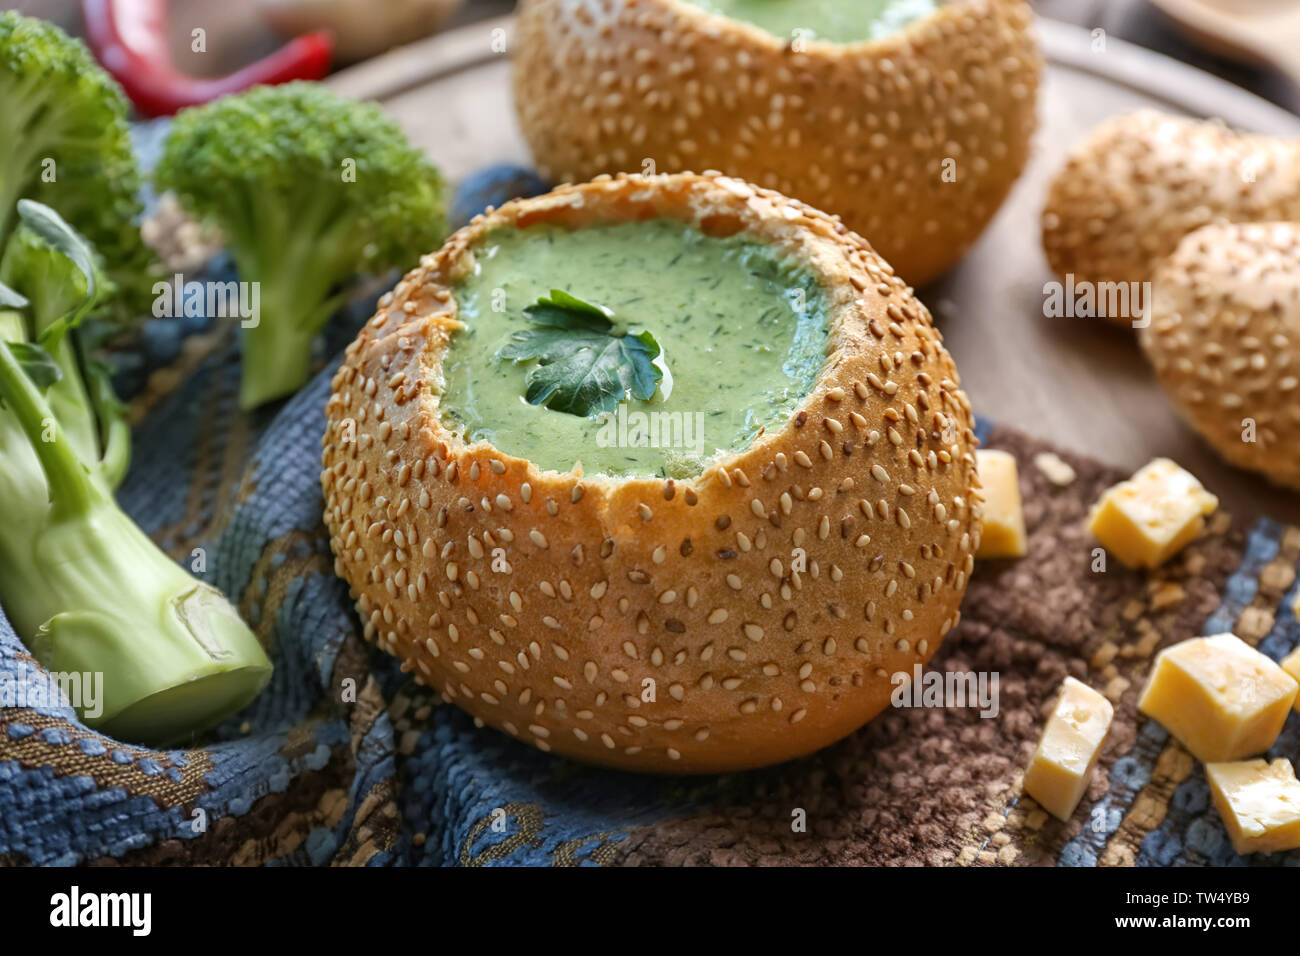 Broccoli cheese soup in bread bun on wooden board - Stock Image